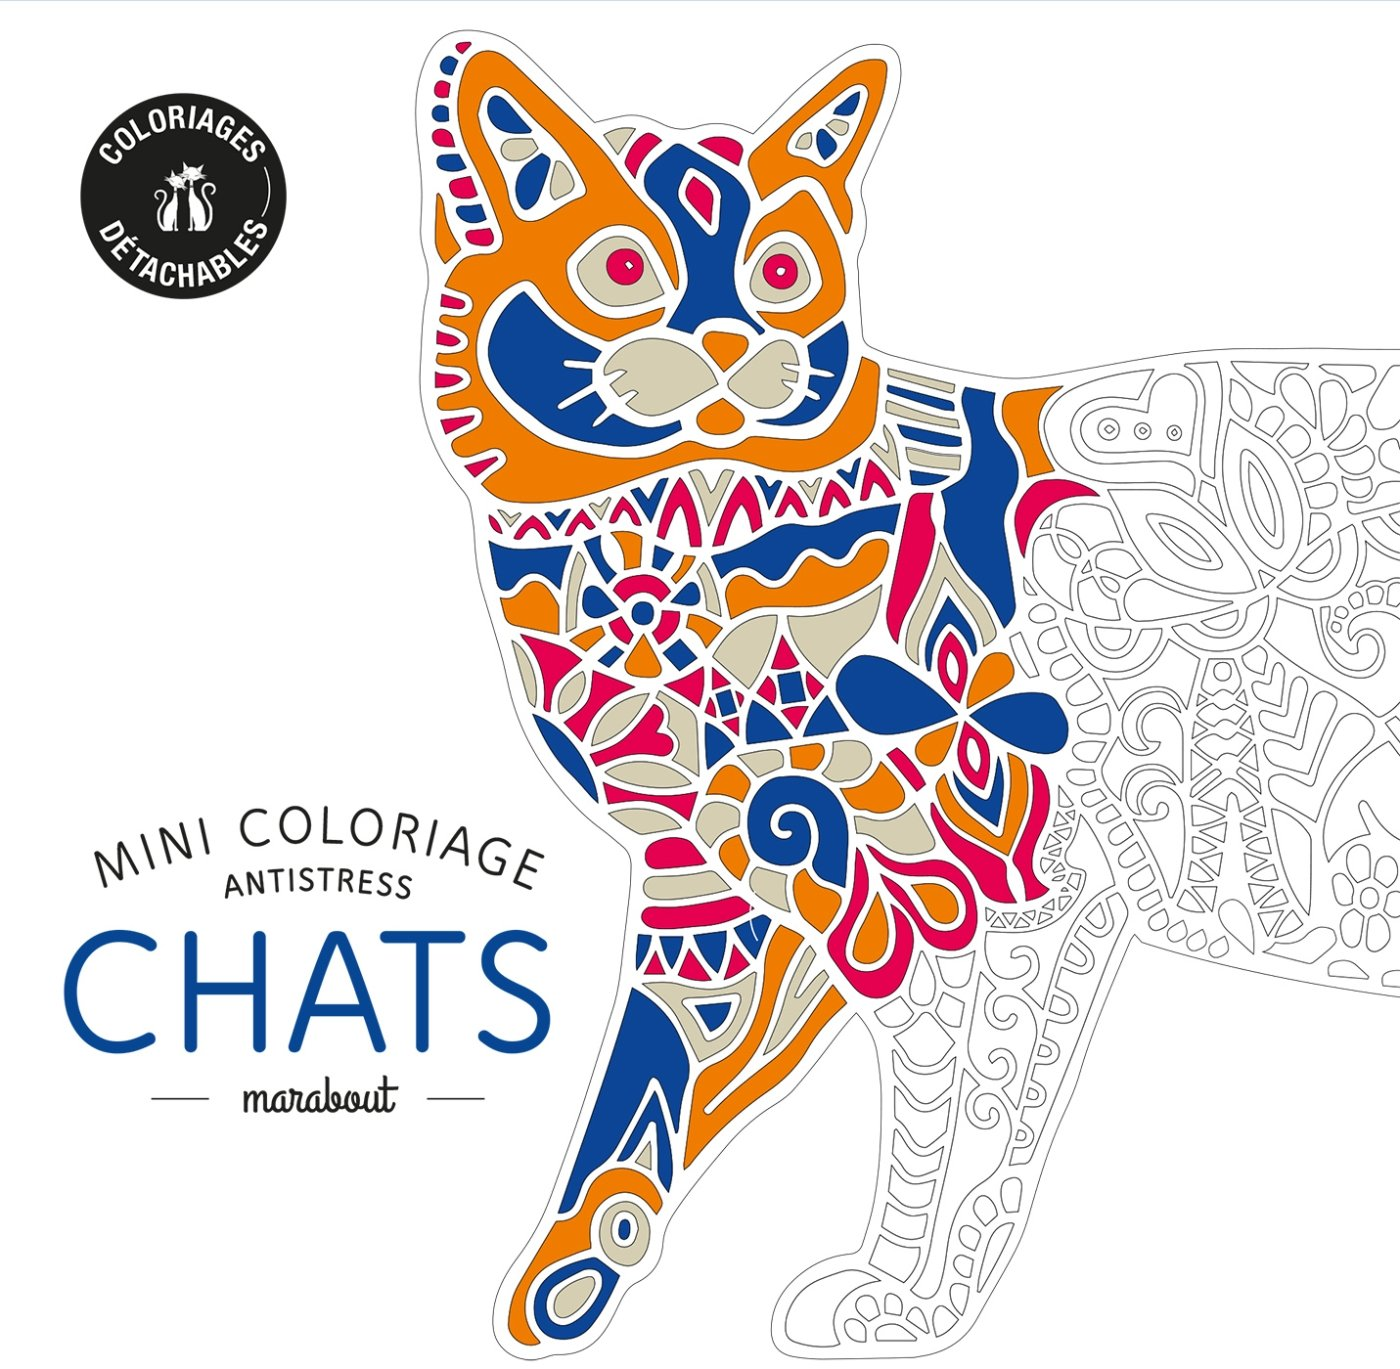 Chronique coloriage anti stress Mini coloriage anti stress CHATS ♥ ♥ ♥